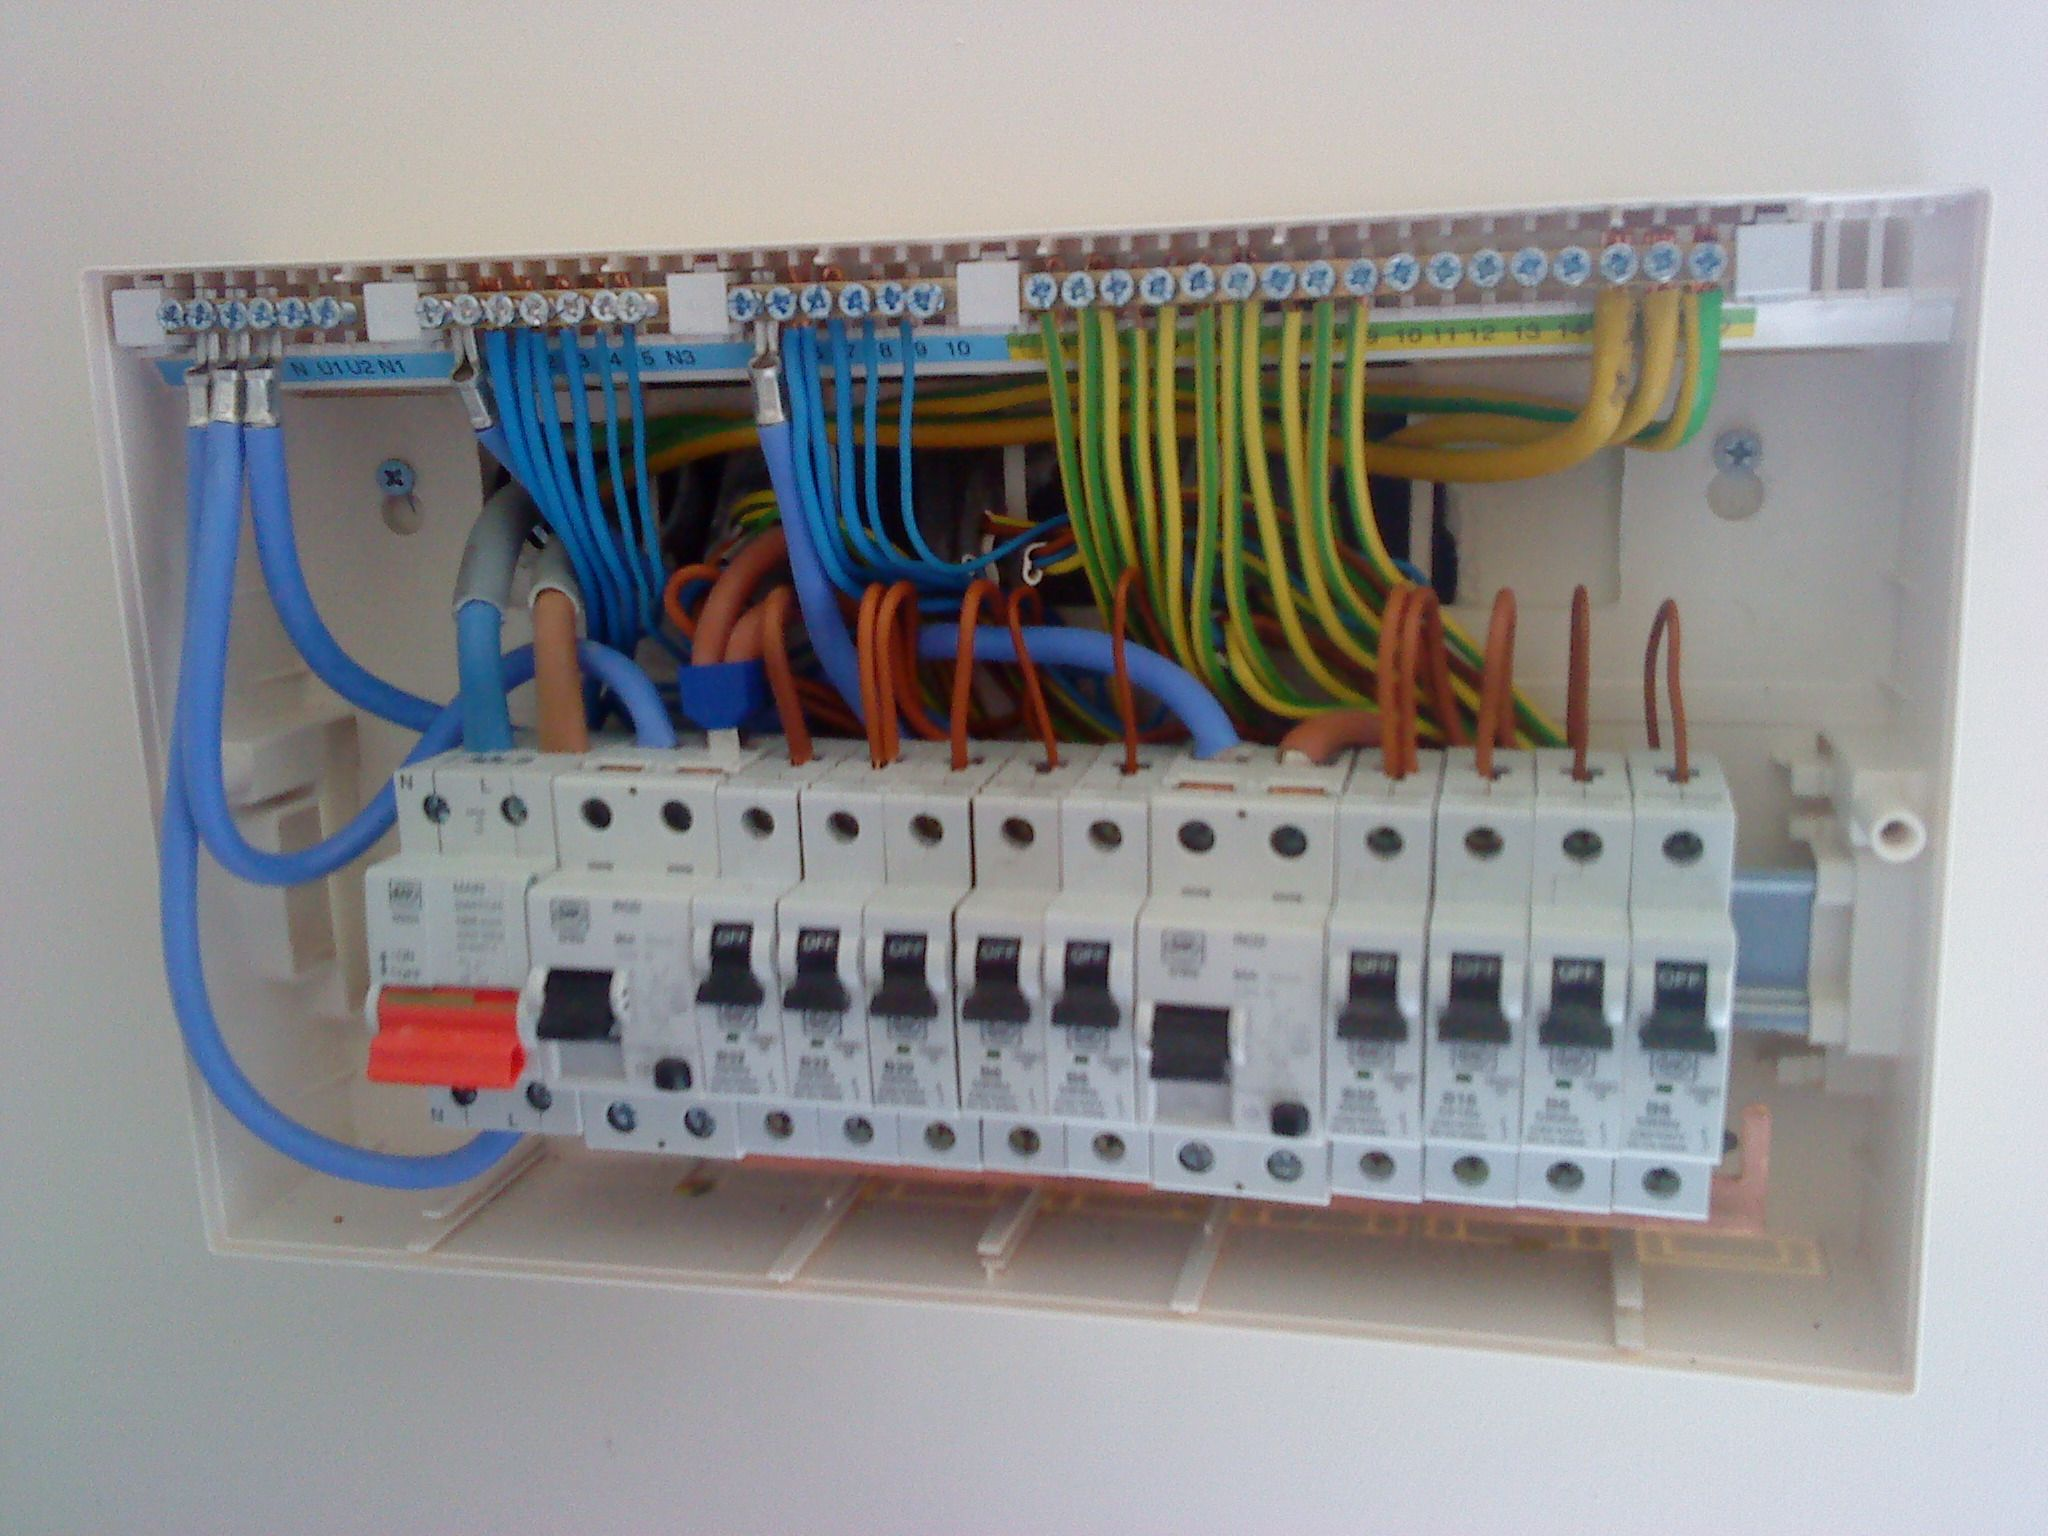 house fuse box wiring wiring diagram home fuse box wiring for house [ 2048 x 1536 Pixel ]